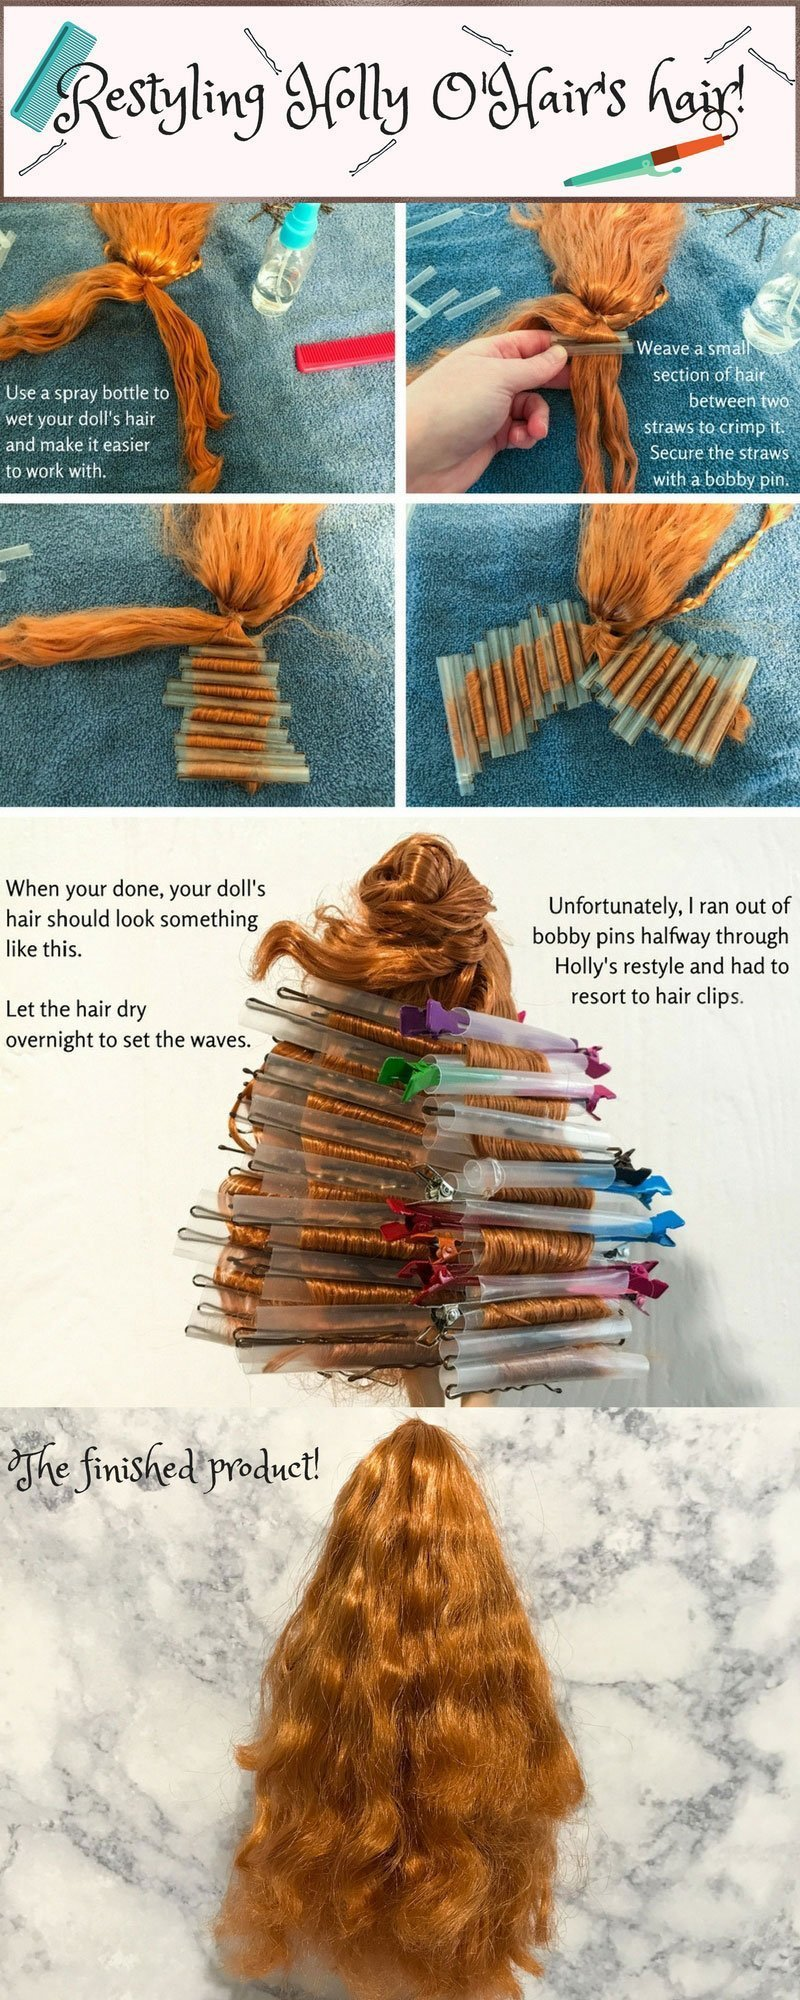 Infographic showing how to crimp doll hair.